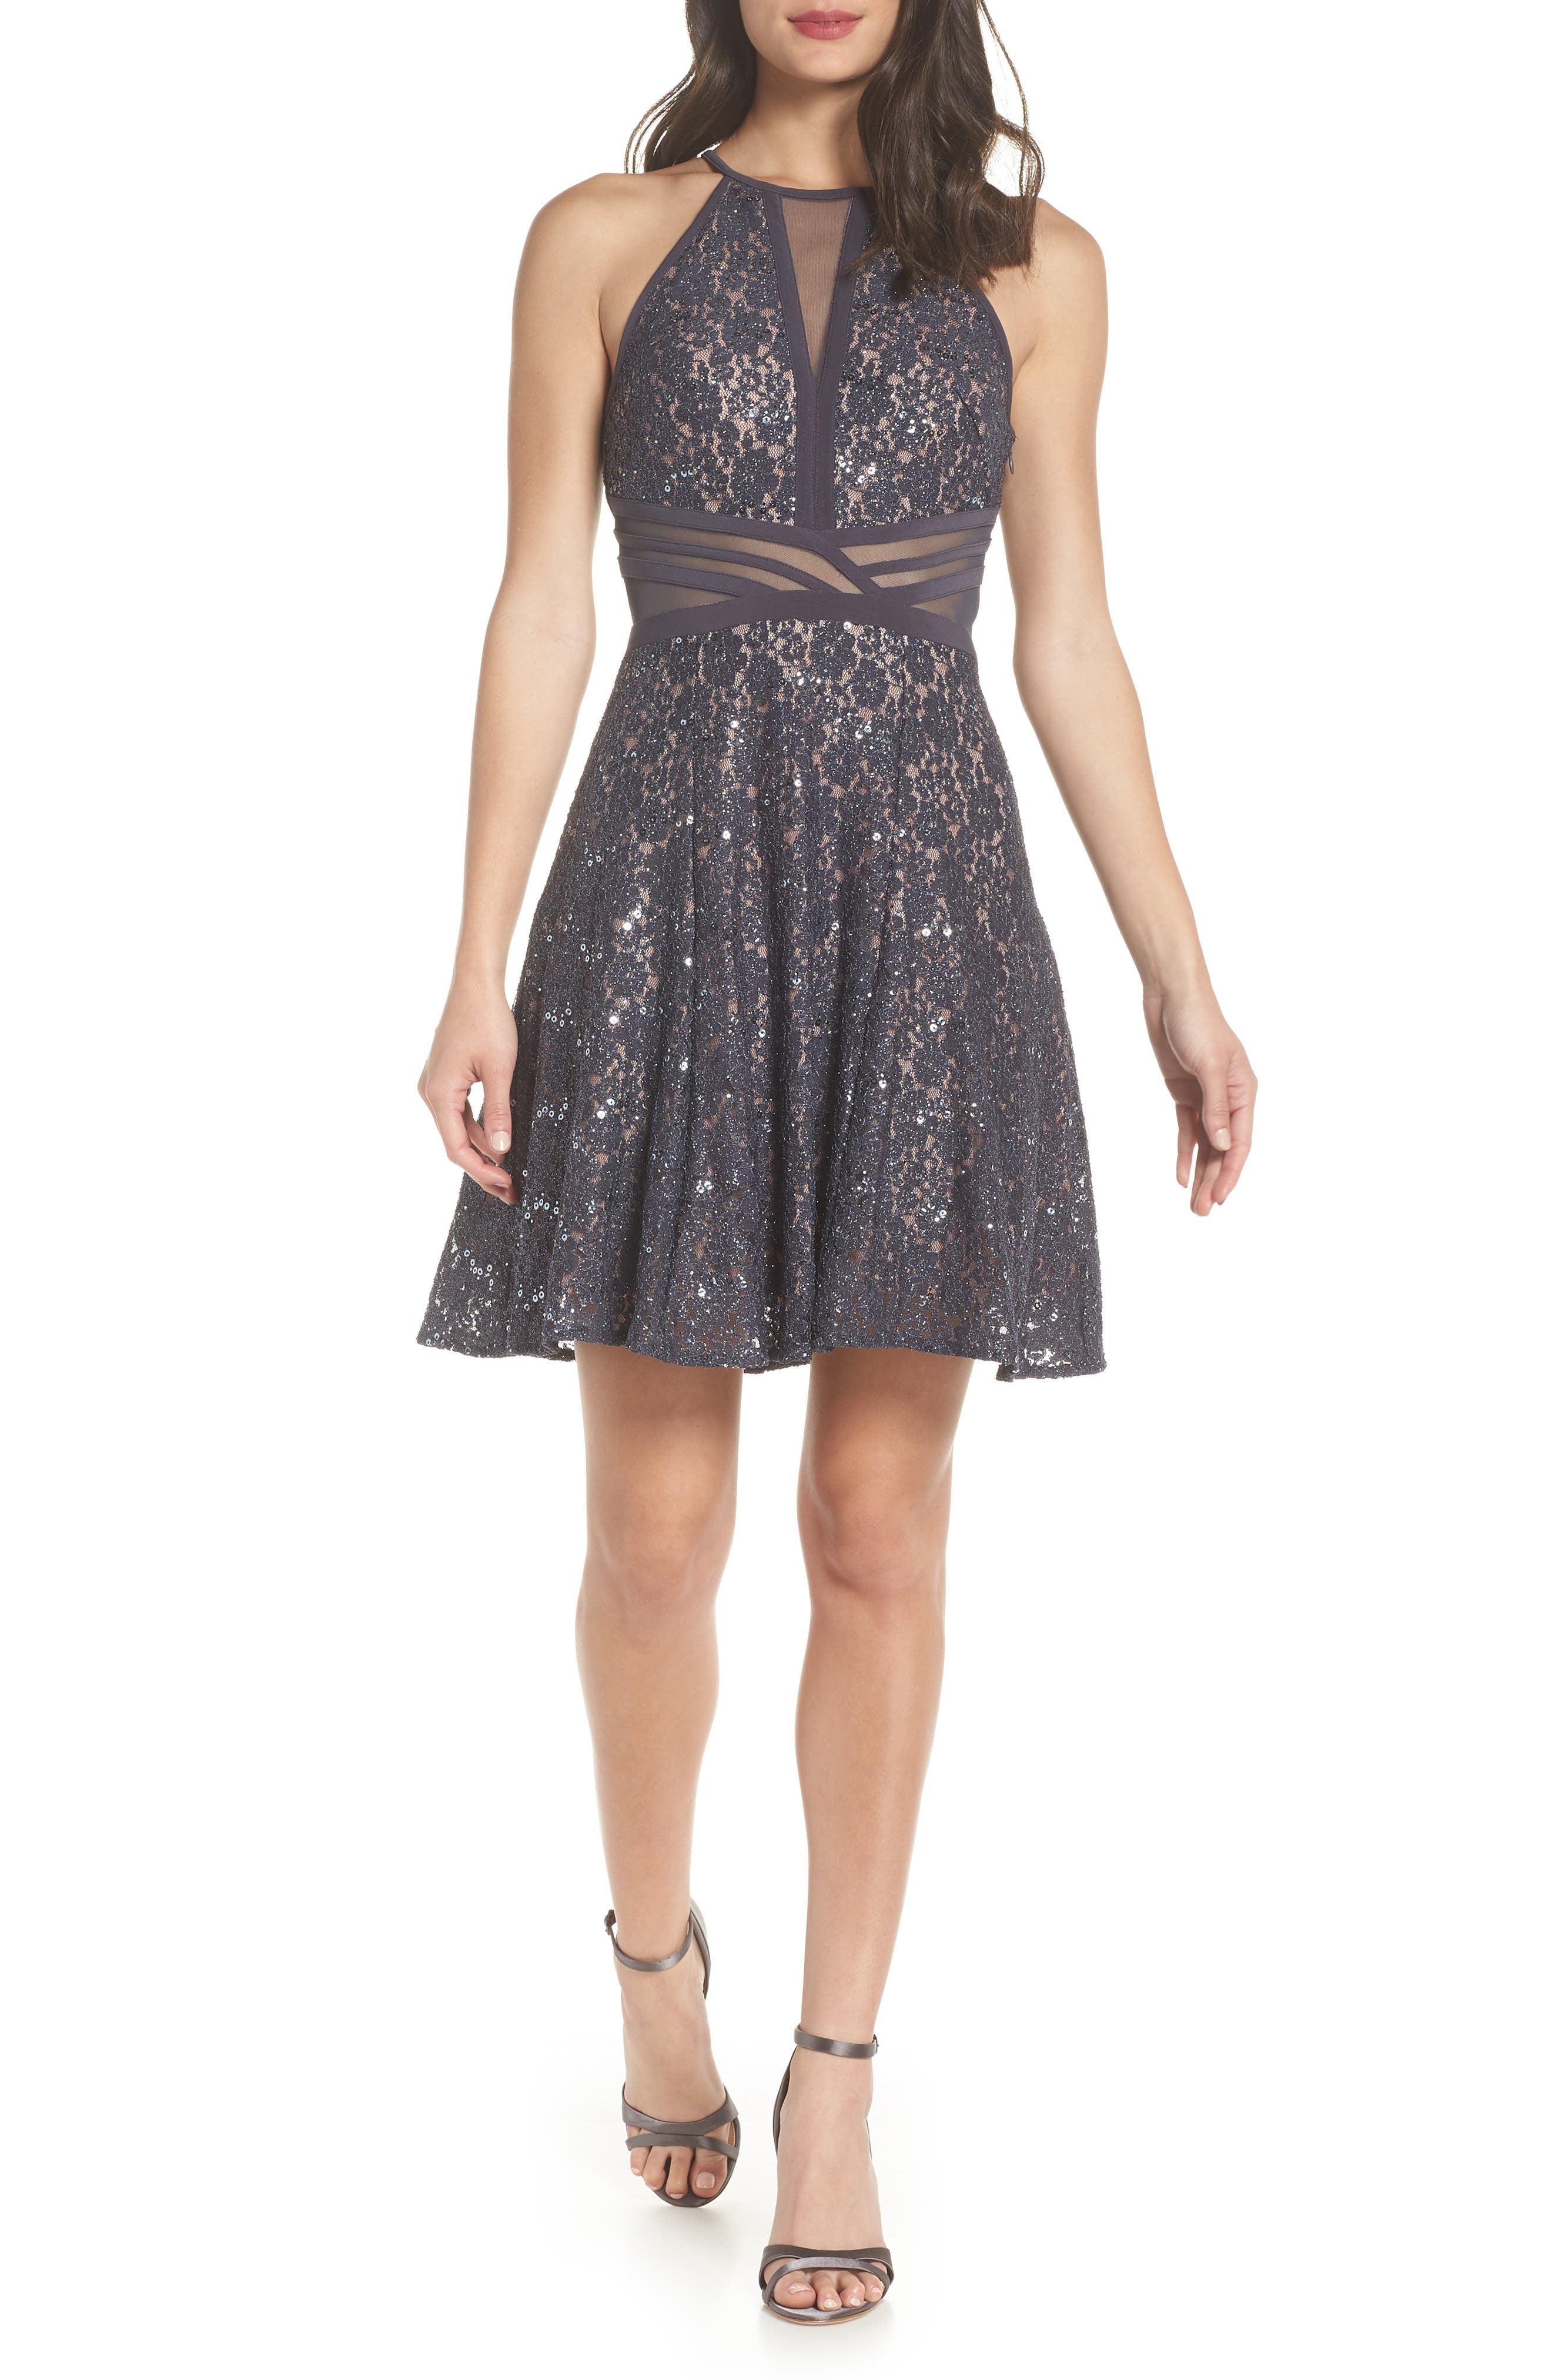 Morgan & Co. Sheer Inset Lace Fit & Flare Dress, /12 - Grey